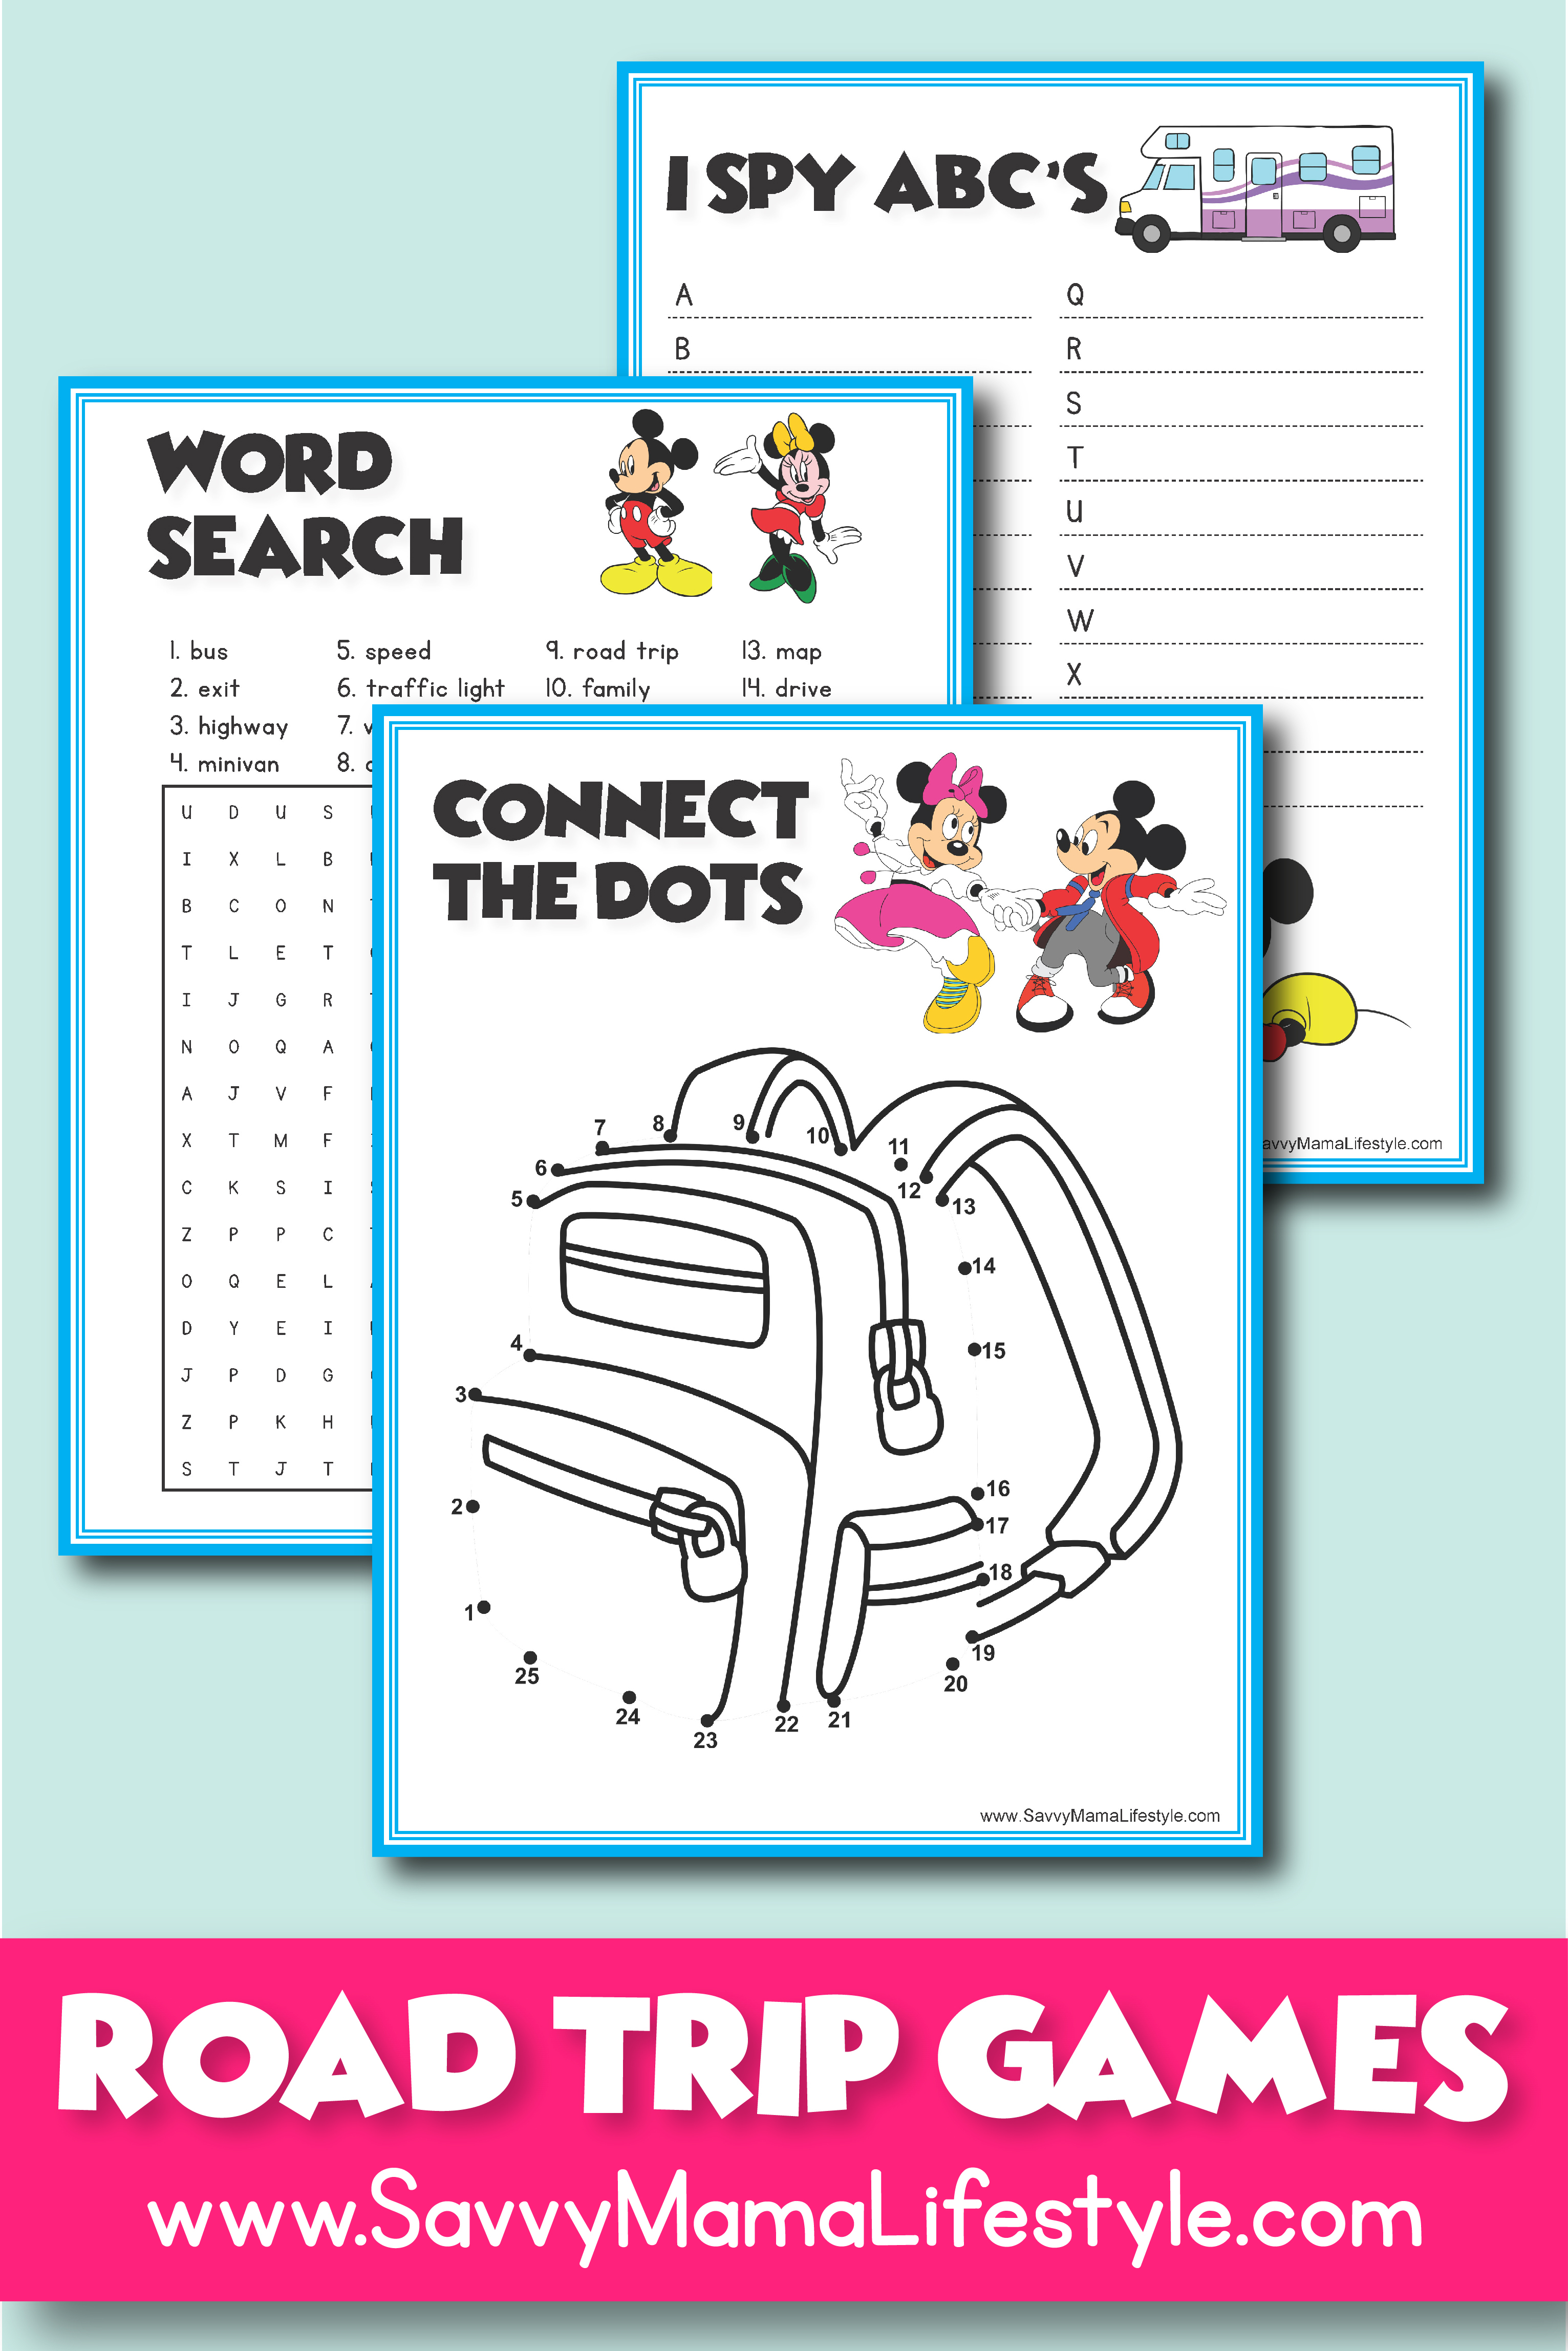 3 Disney Road Trip Games Free Printable Activities For